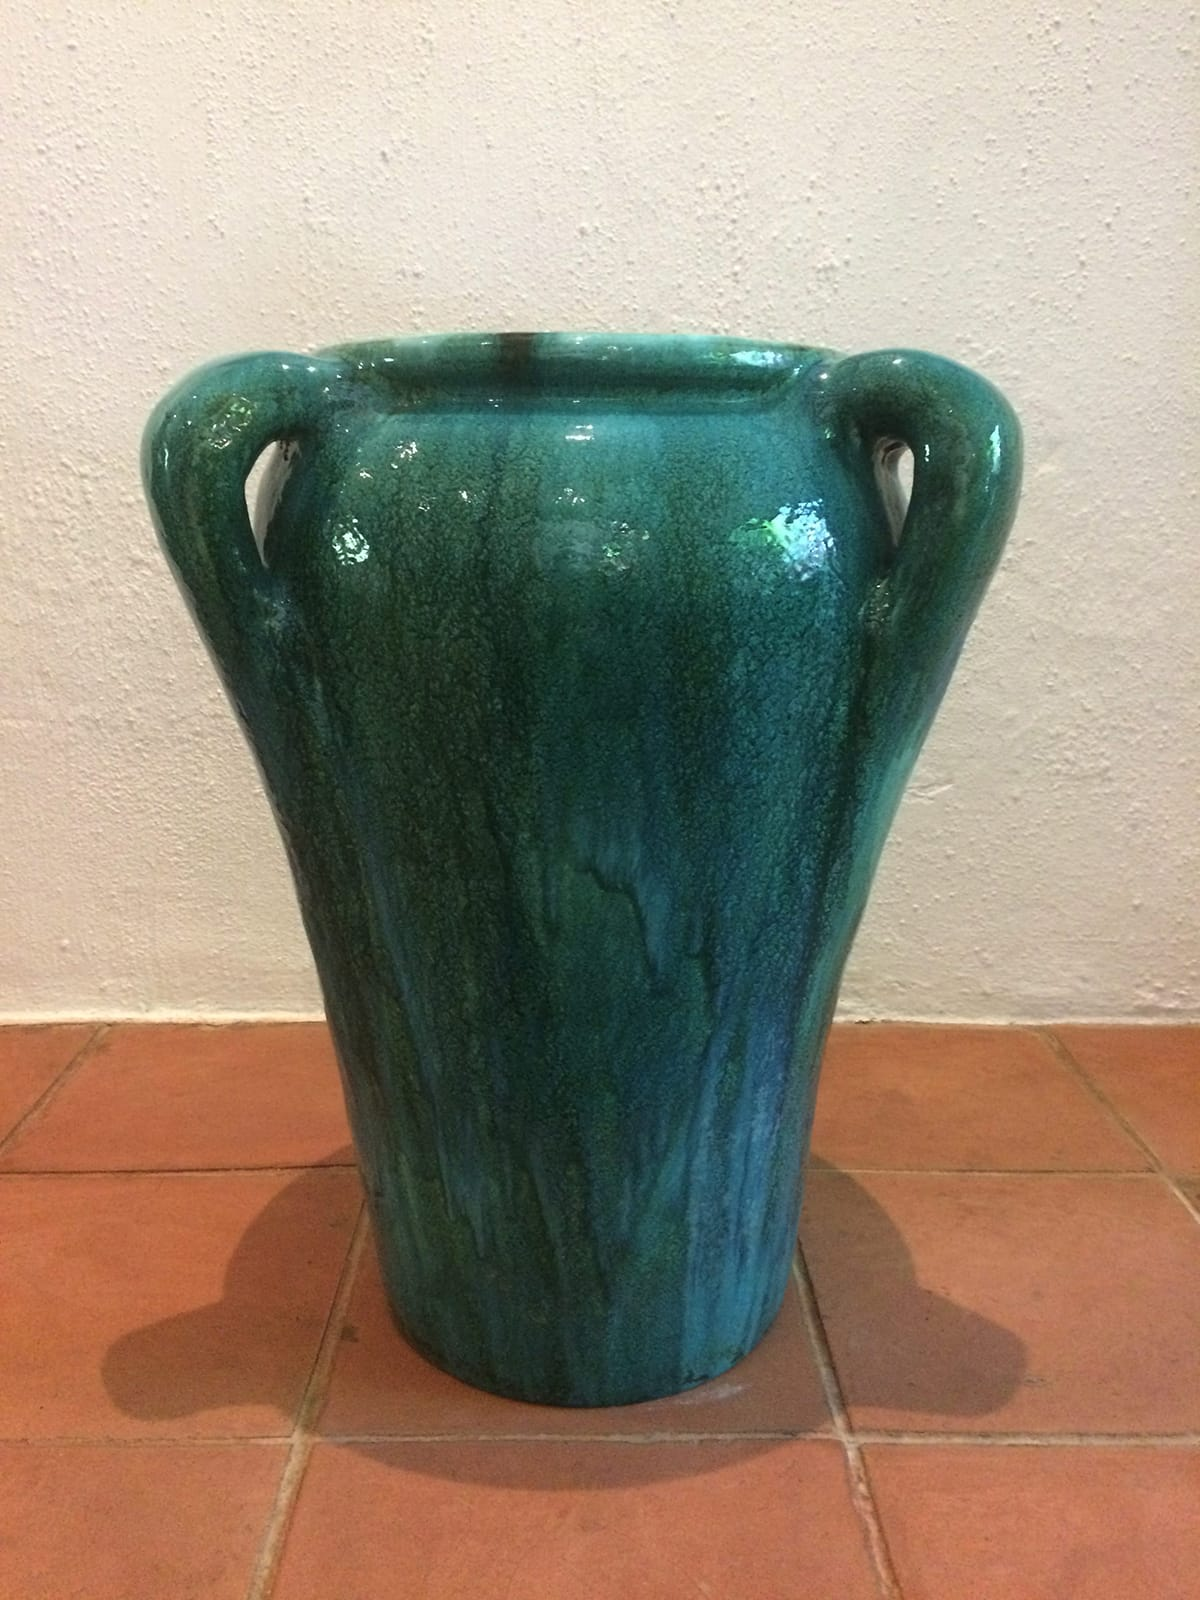 A large Ceramic Studio Blue-Green<br>Aladin-style 3 Handled Floor Pot, 1930s (h: 60cm)<br> Provenance: Joan Methley, the co-founder<br>of the Ceramic Studio and the<br>manager of Linnware